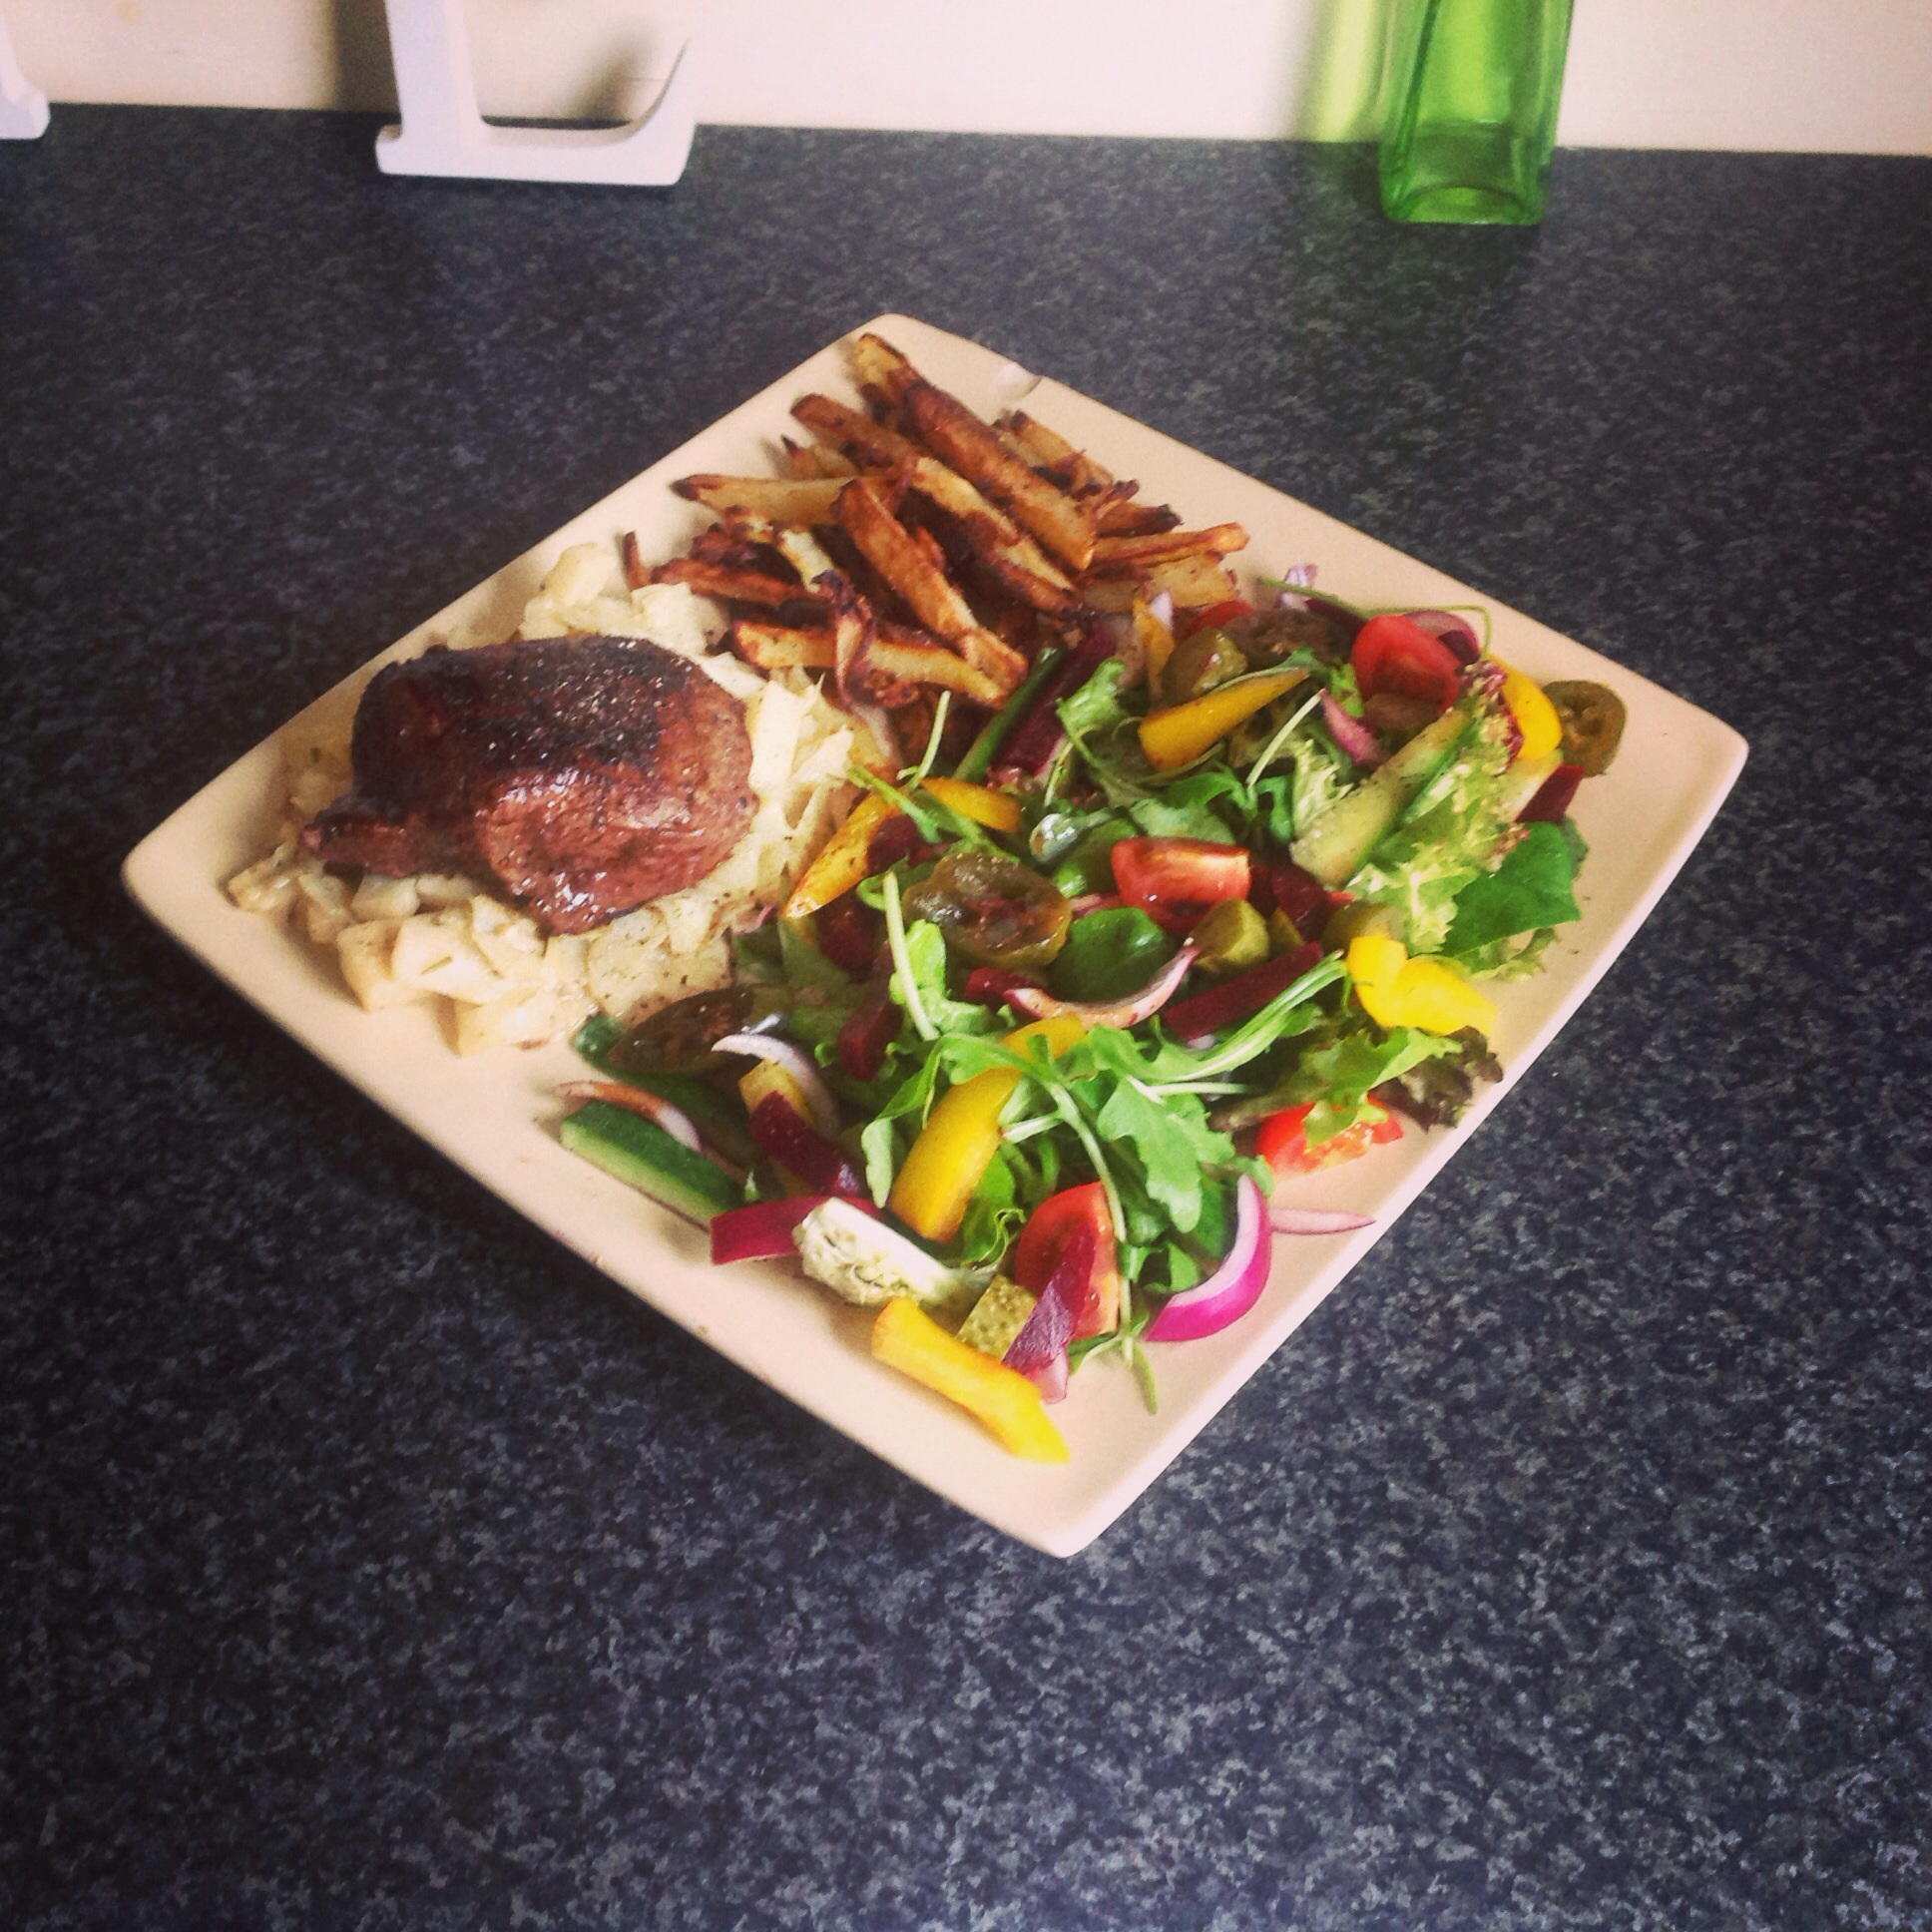 Fillet steak, sautéed cabbage and syn free chips and salad